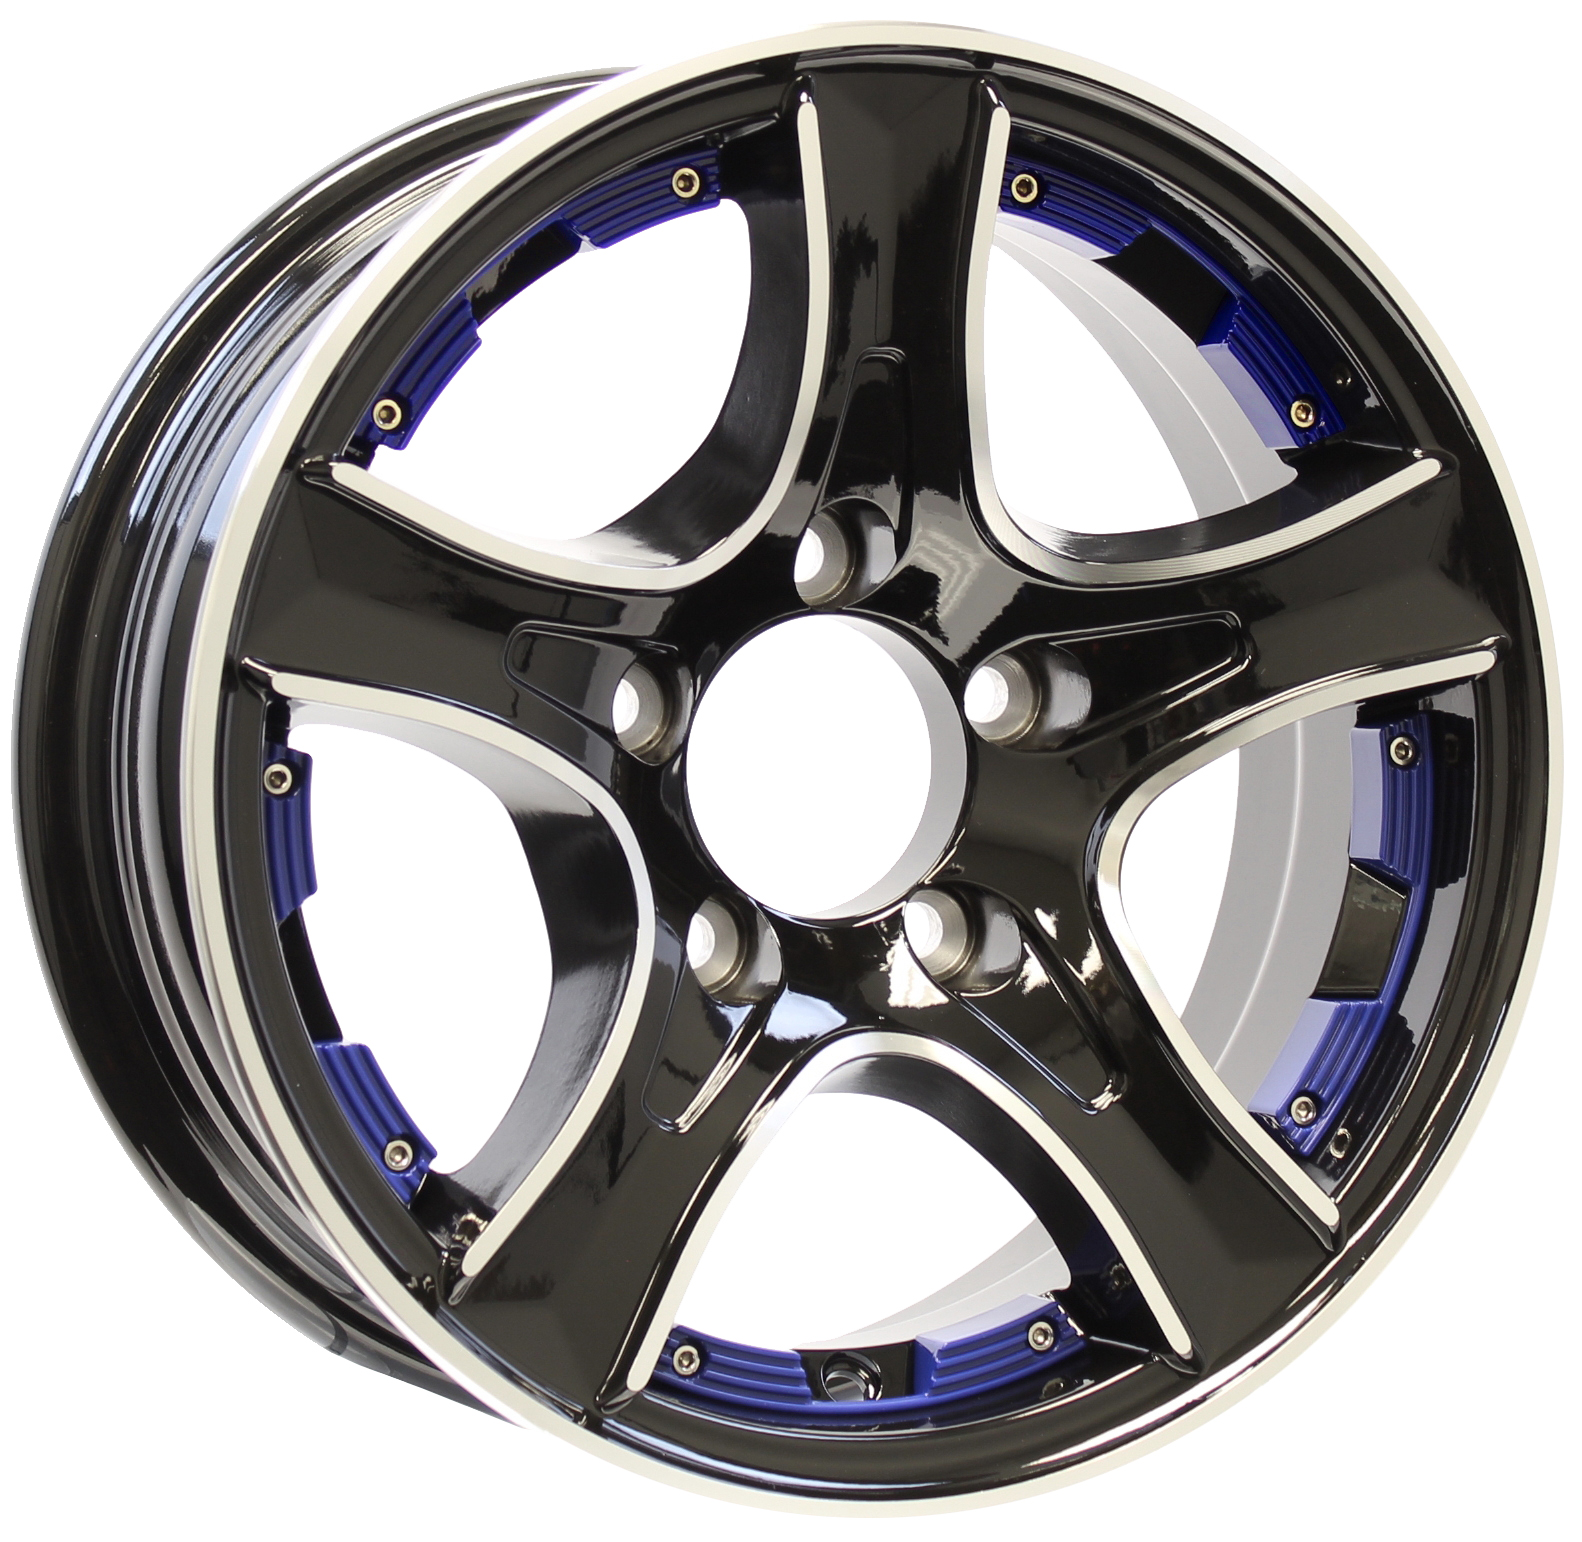 Thoroughbred 14x5.5 5-Lug Black Aluminum Trailer Wheel with Blue Inserts Image